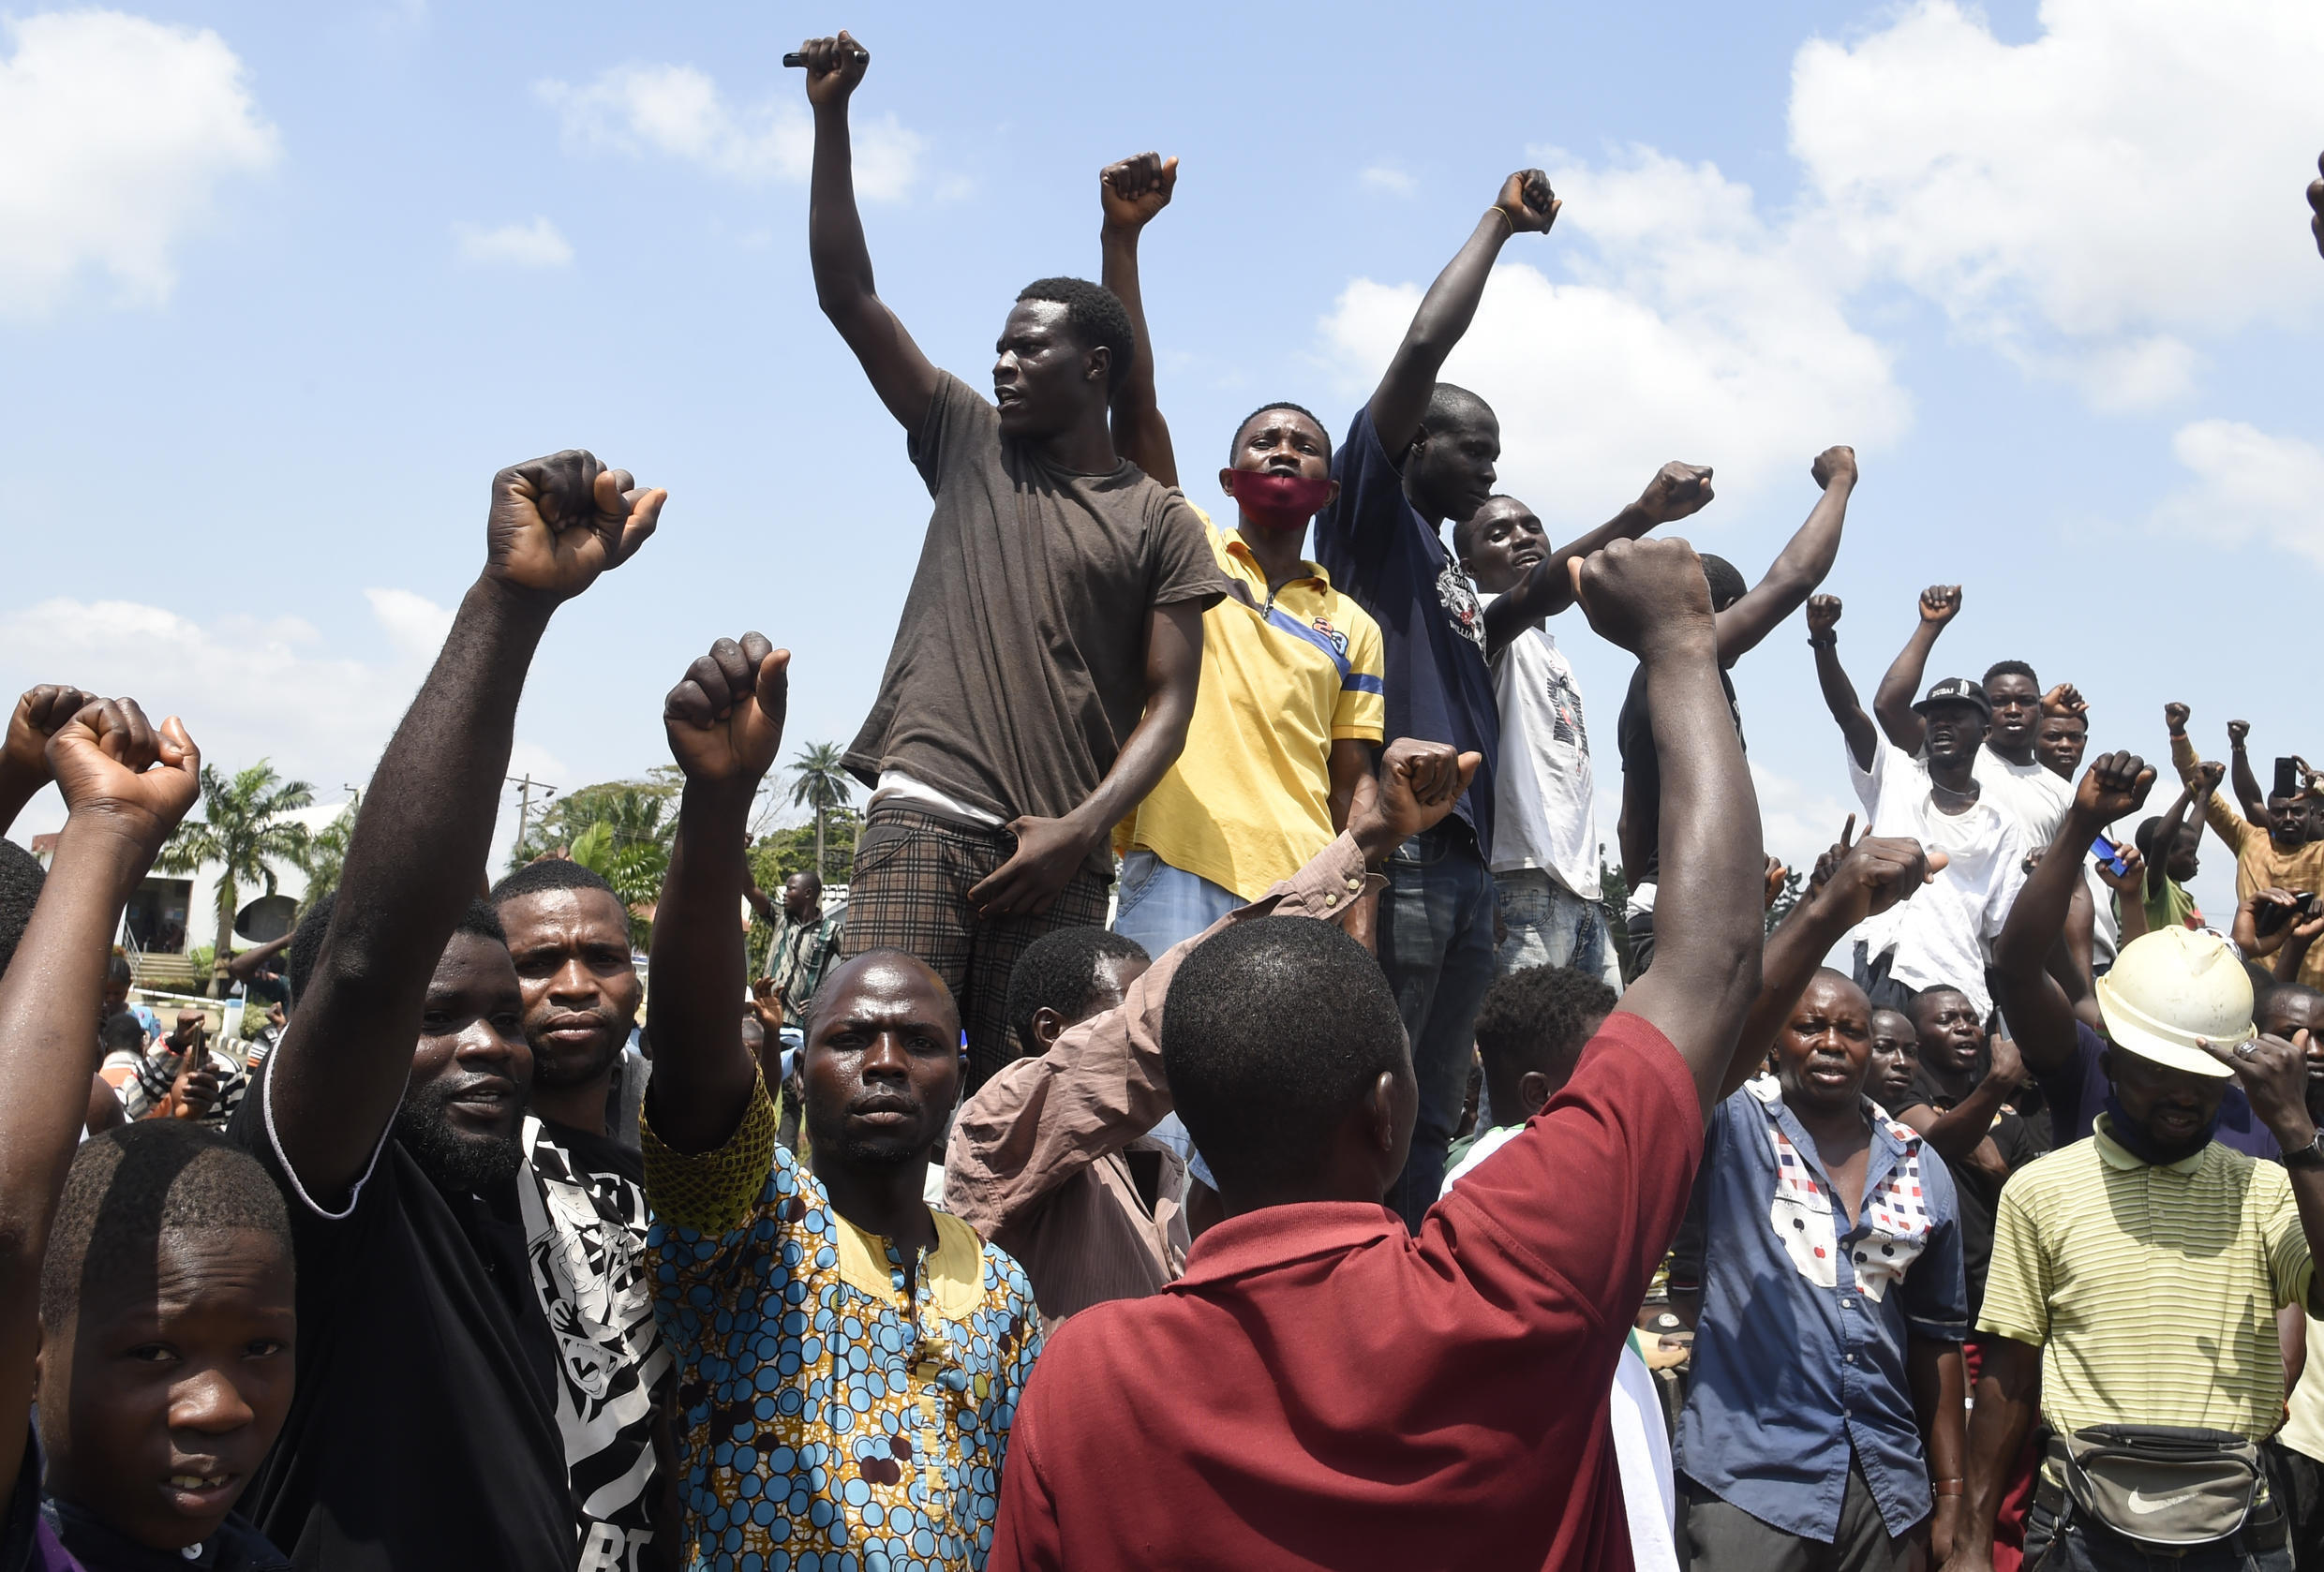 Nigeria has been rocked by protests over police brutality and deep-rooted social grievances